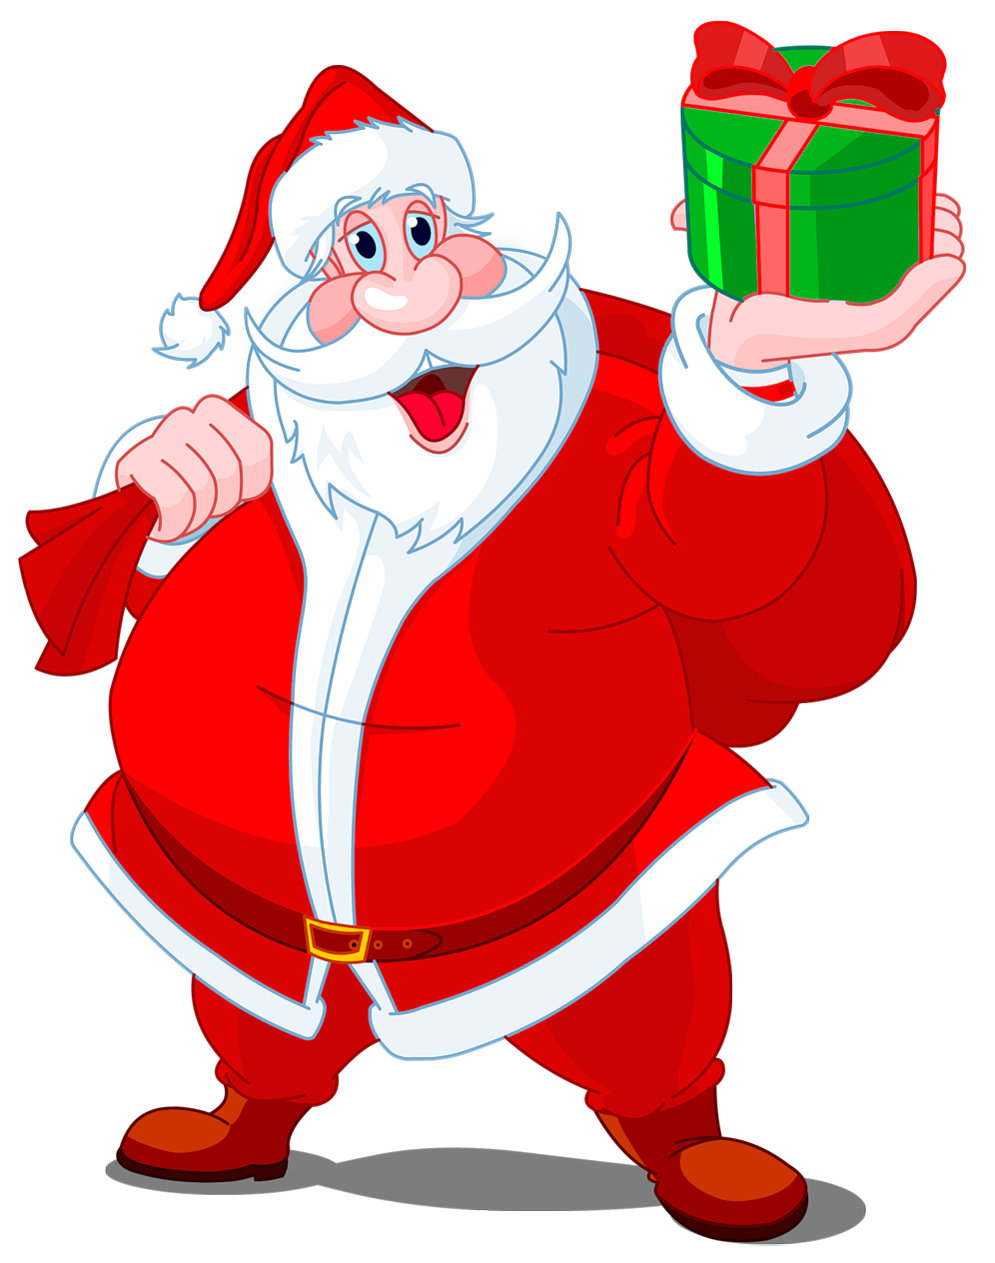 Transparent_Santa_Claus_with_Green_Gift_PNG_Clipart